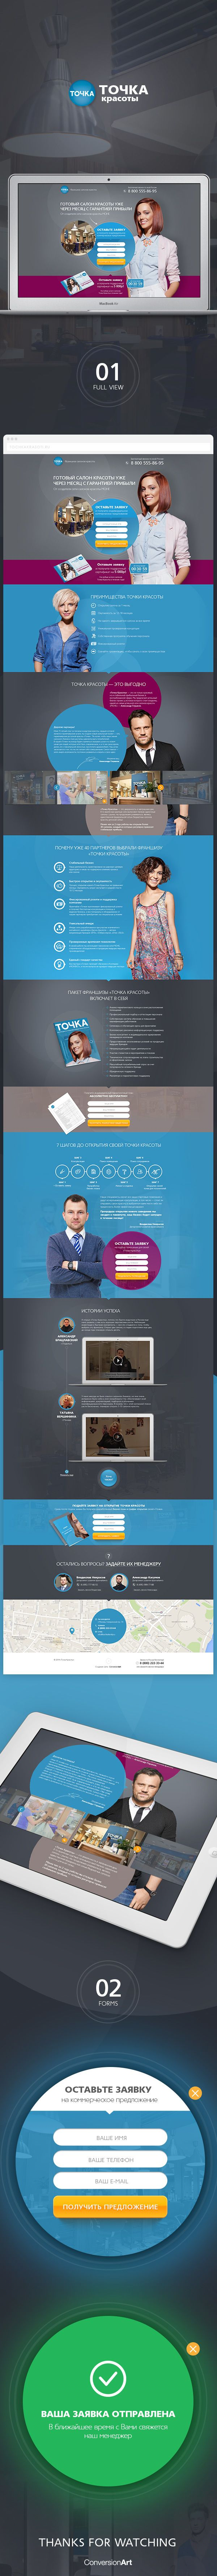 Landing Page for franchise of beauty salons by ConversionArt agency, via Behance